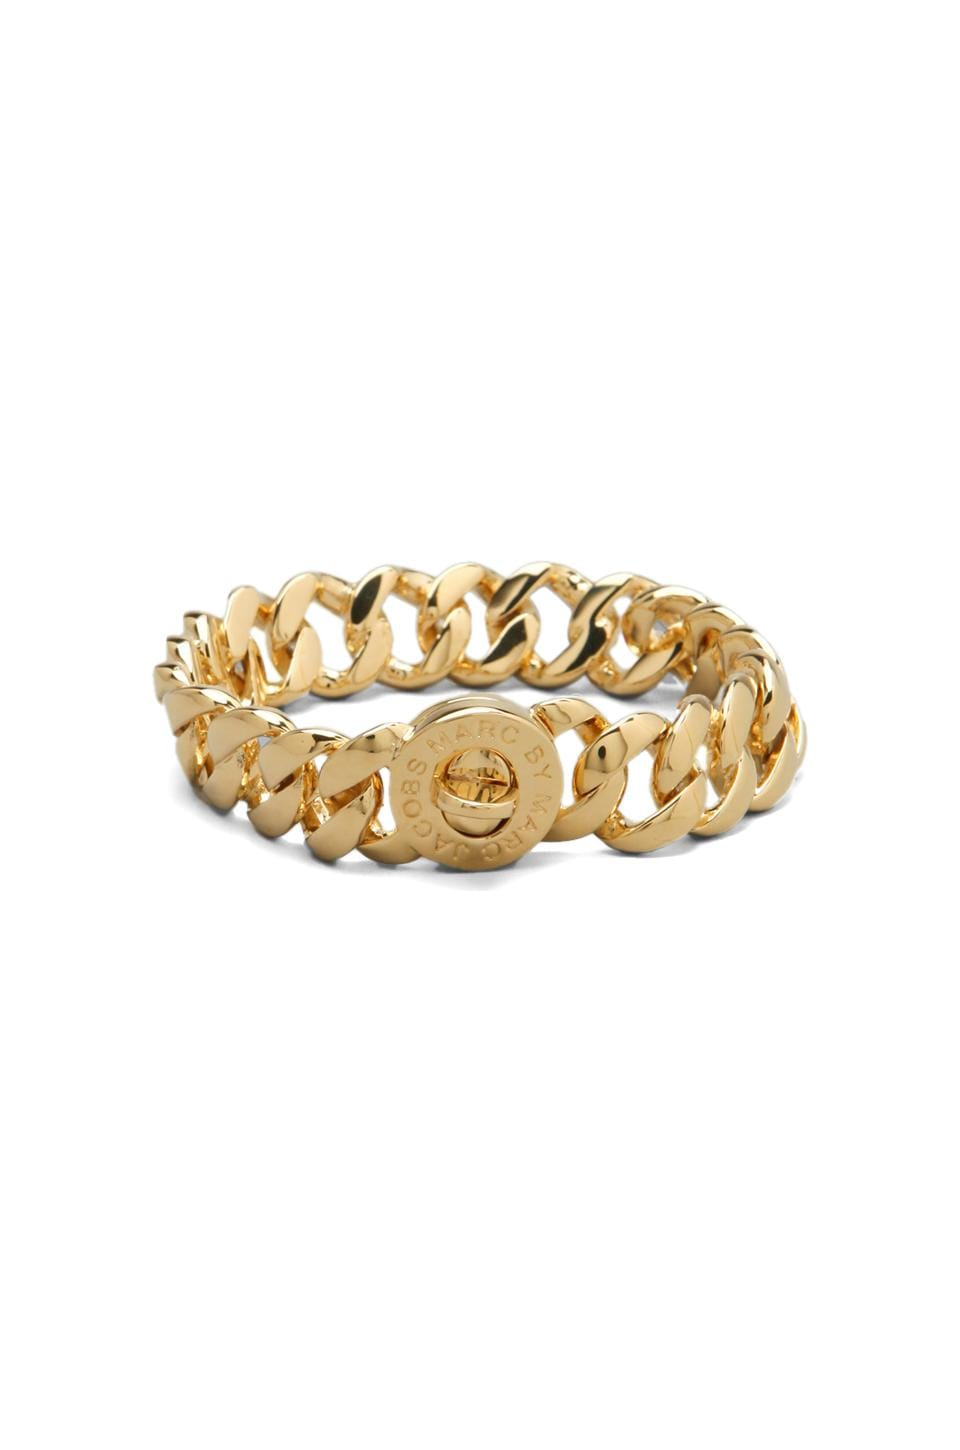 Marc by Marc Jacobs Small Katie Bracelet in Oro